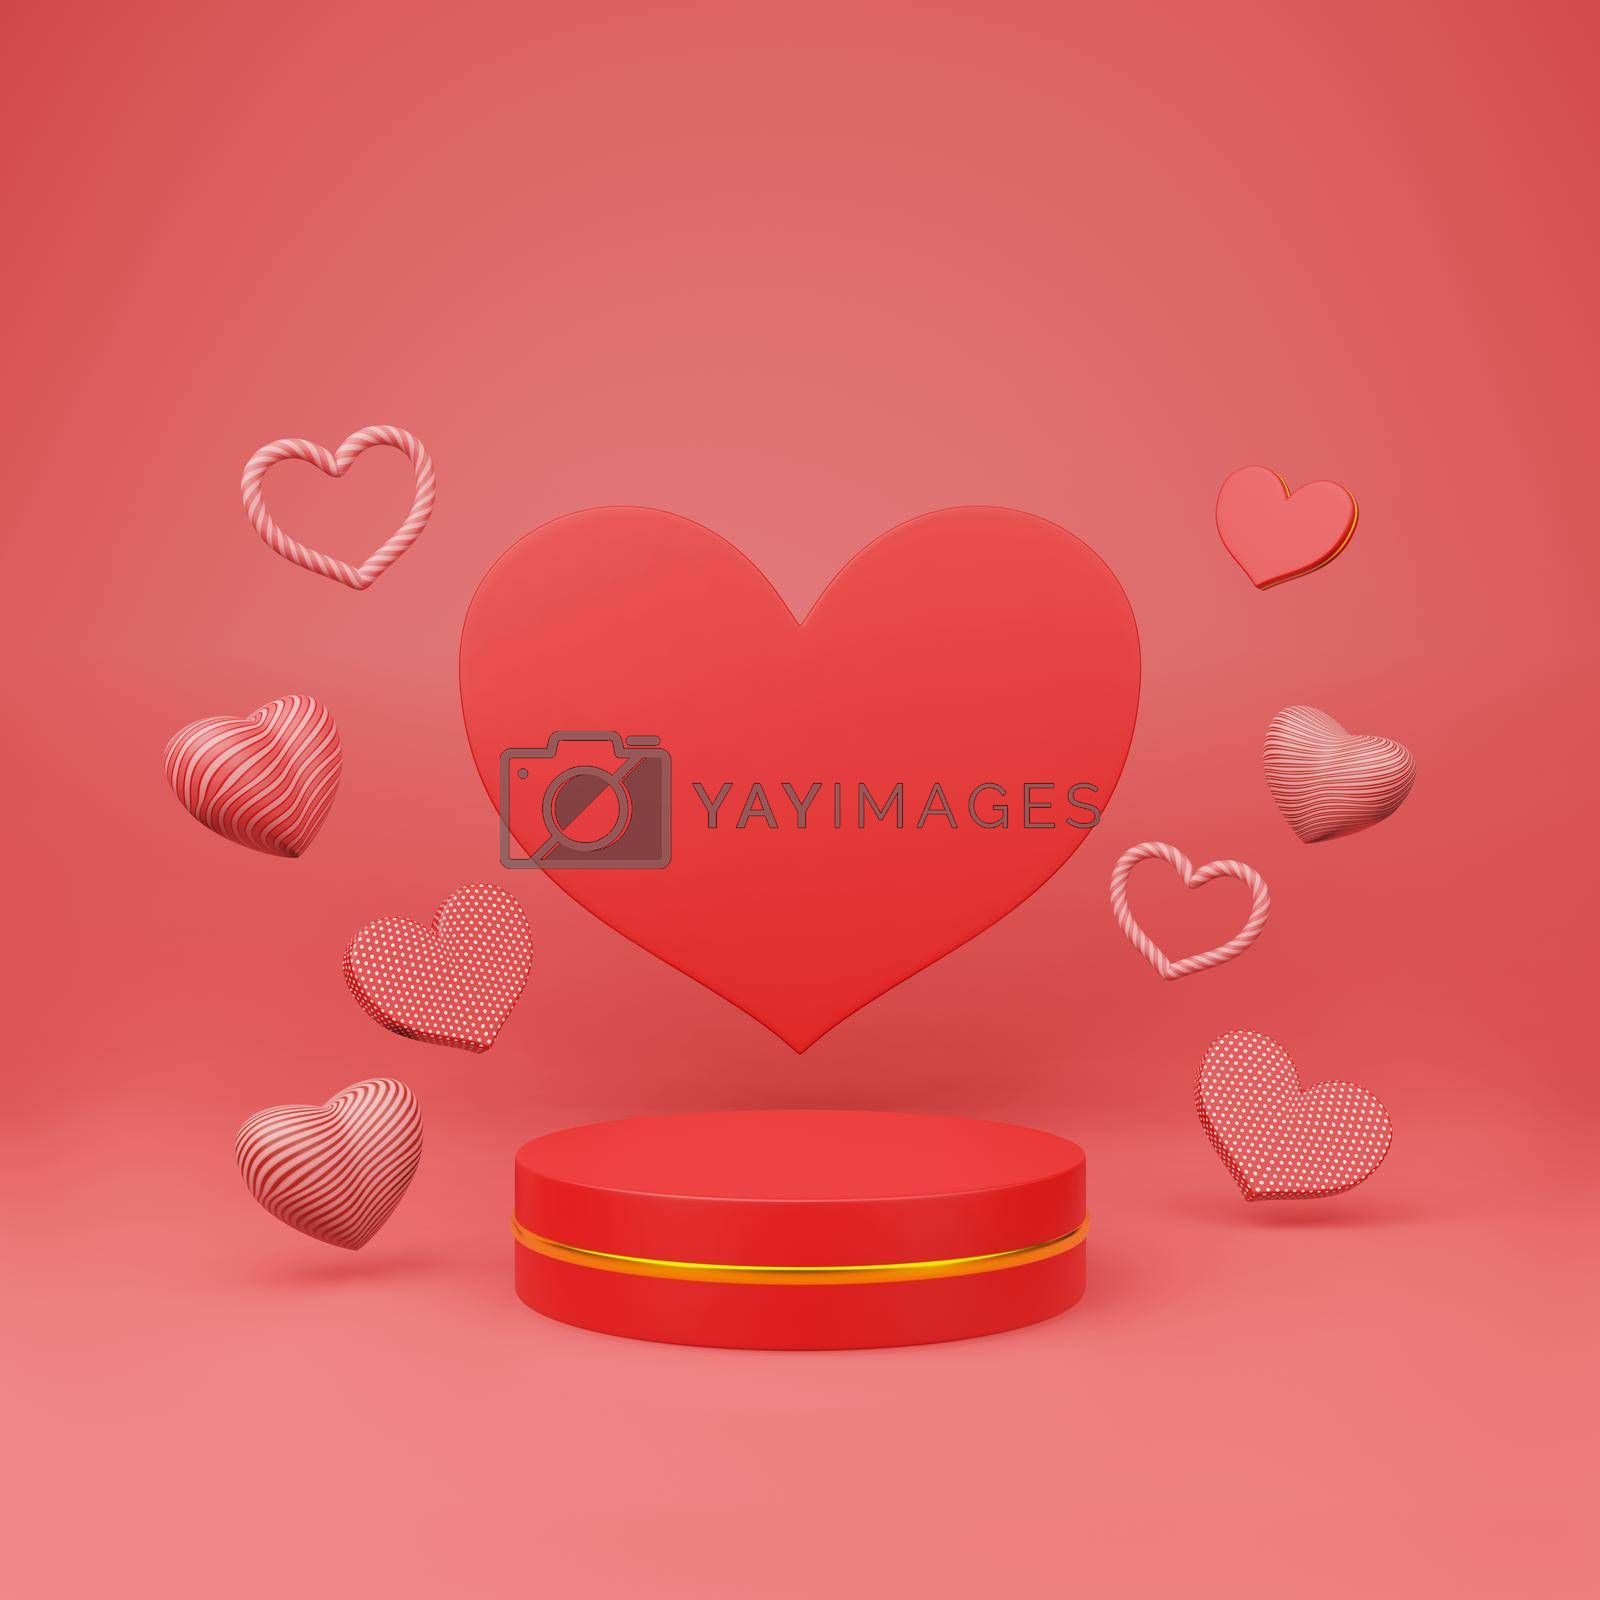 Royalty free image of Red podium with beautiful heart sharp floating by eaglesky